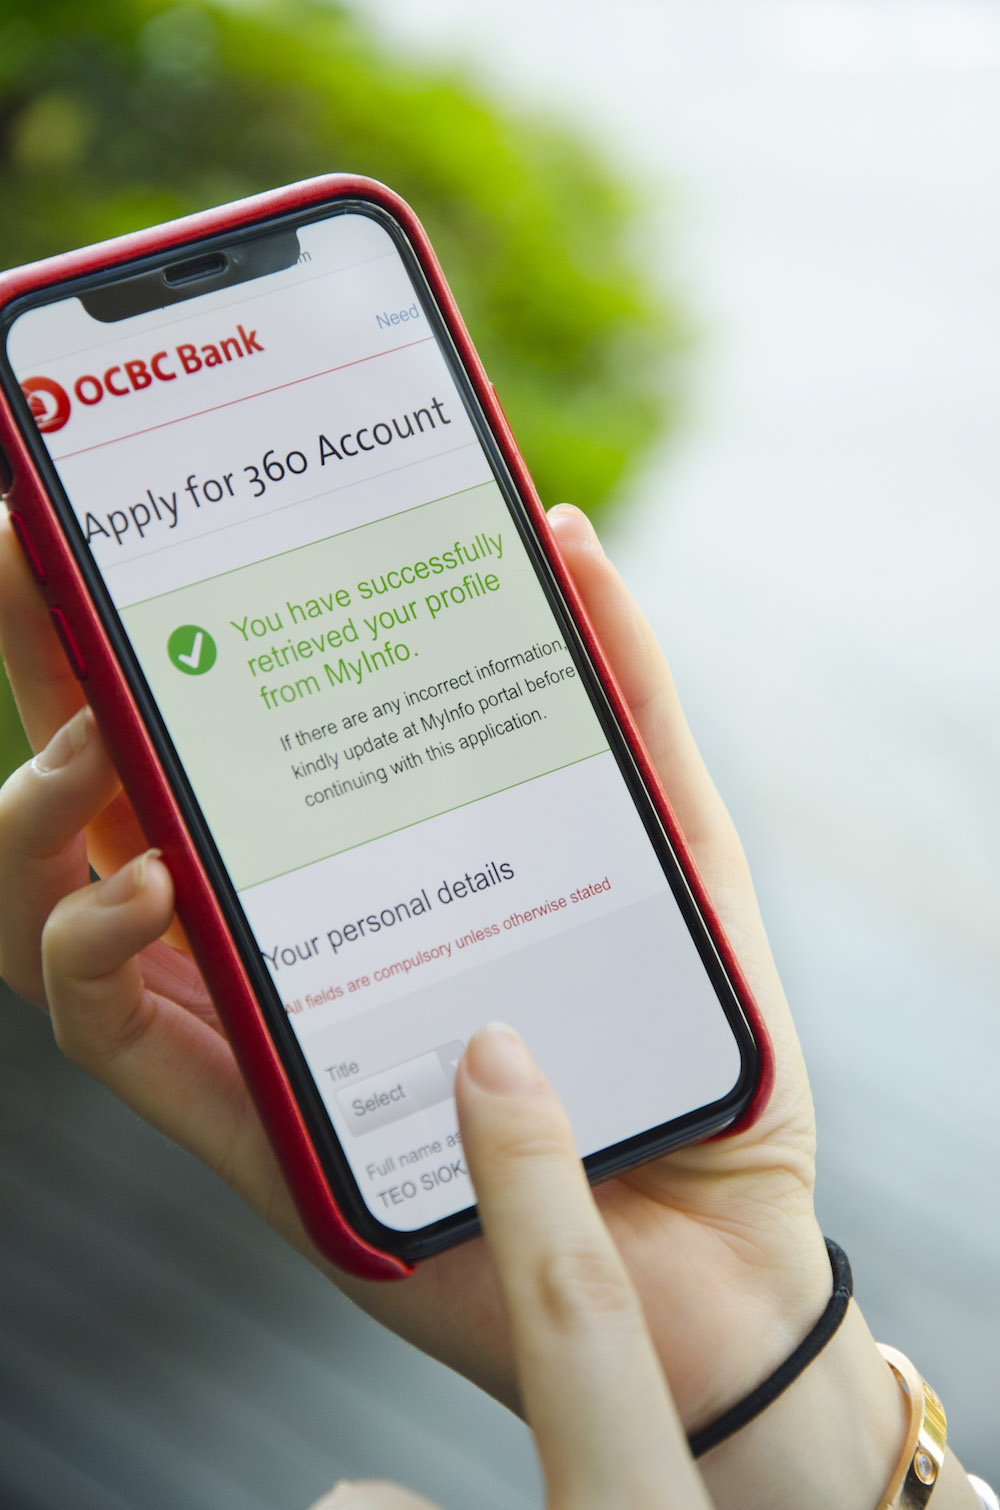 Ocbc Now Lets You Open A New Bank Account Online In 5 Minutes